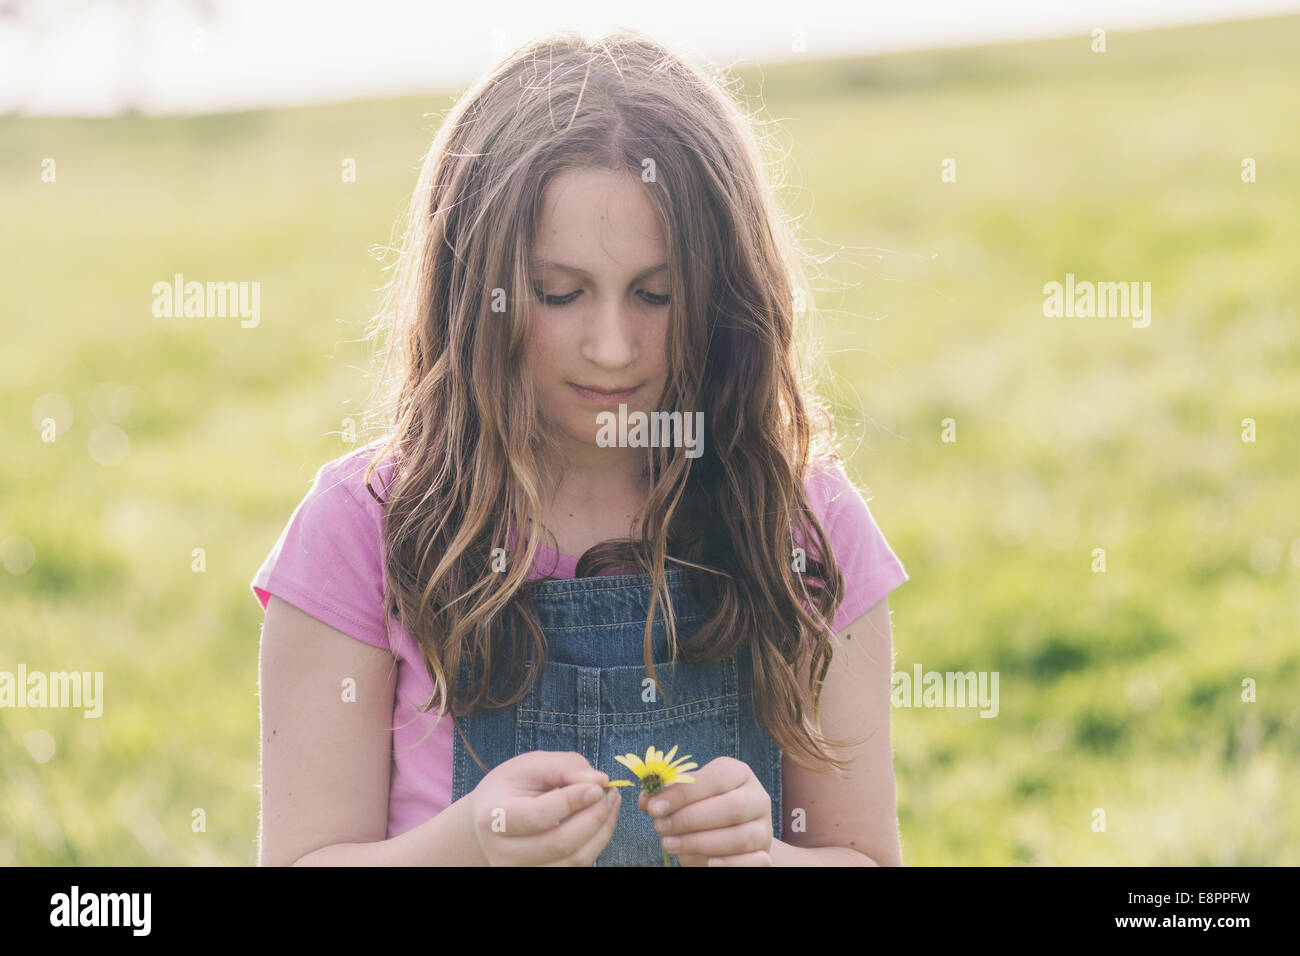 tween girl with daisy making a wish, looking down, in a green field - Stock Image